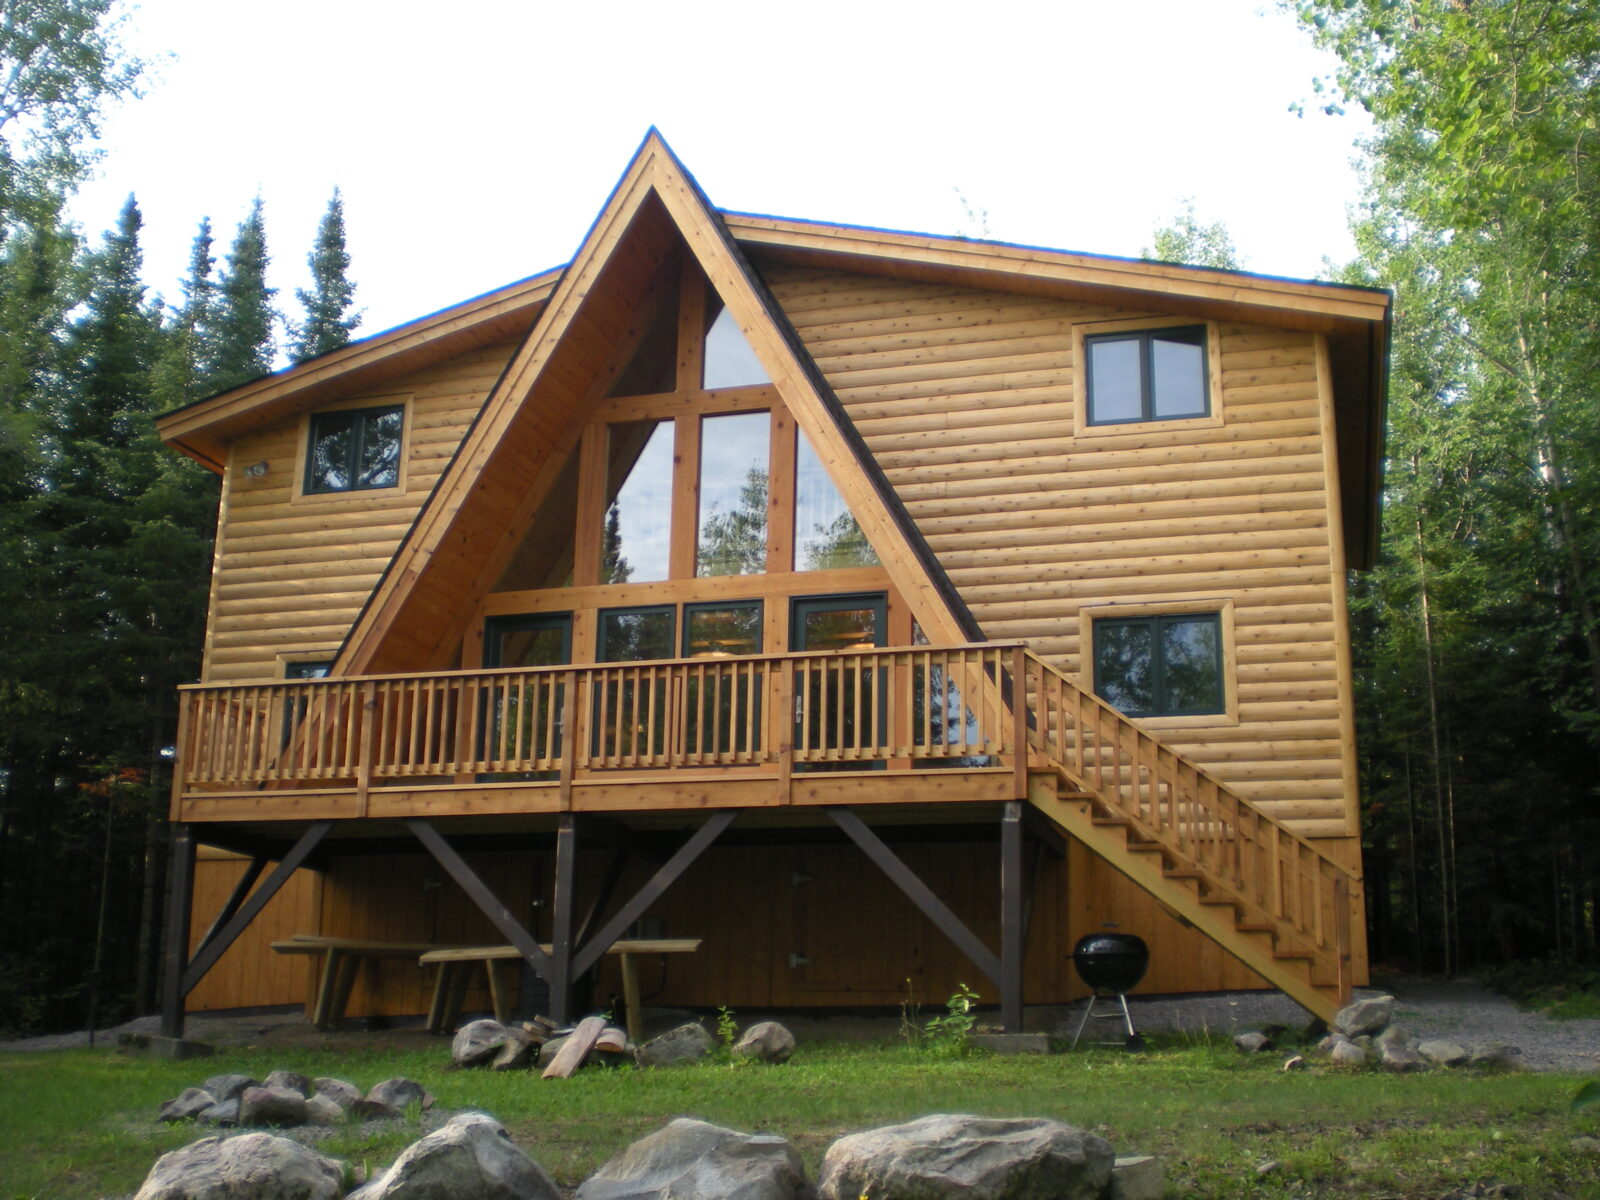 lake side, after renovation, half log siding